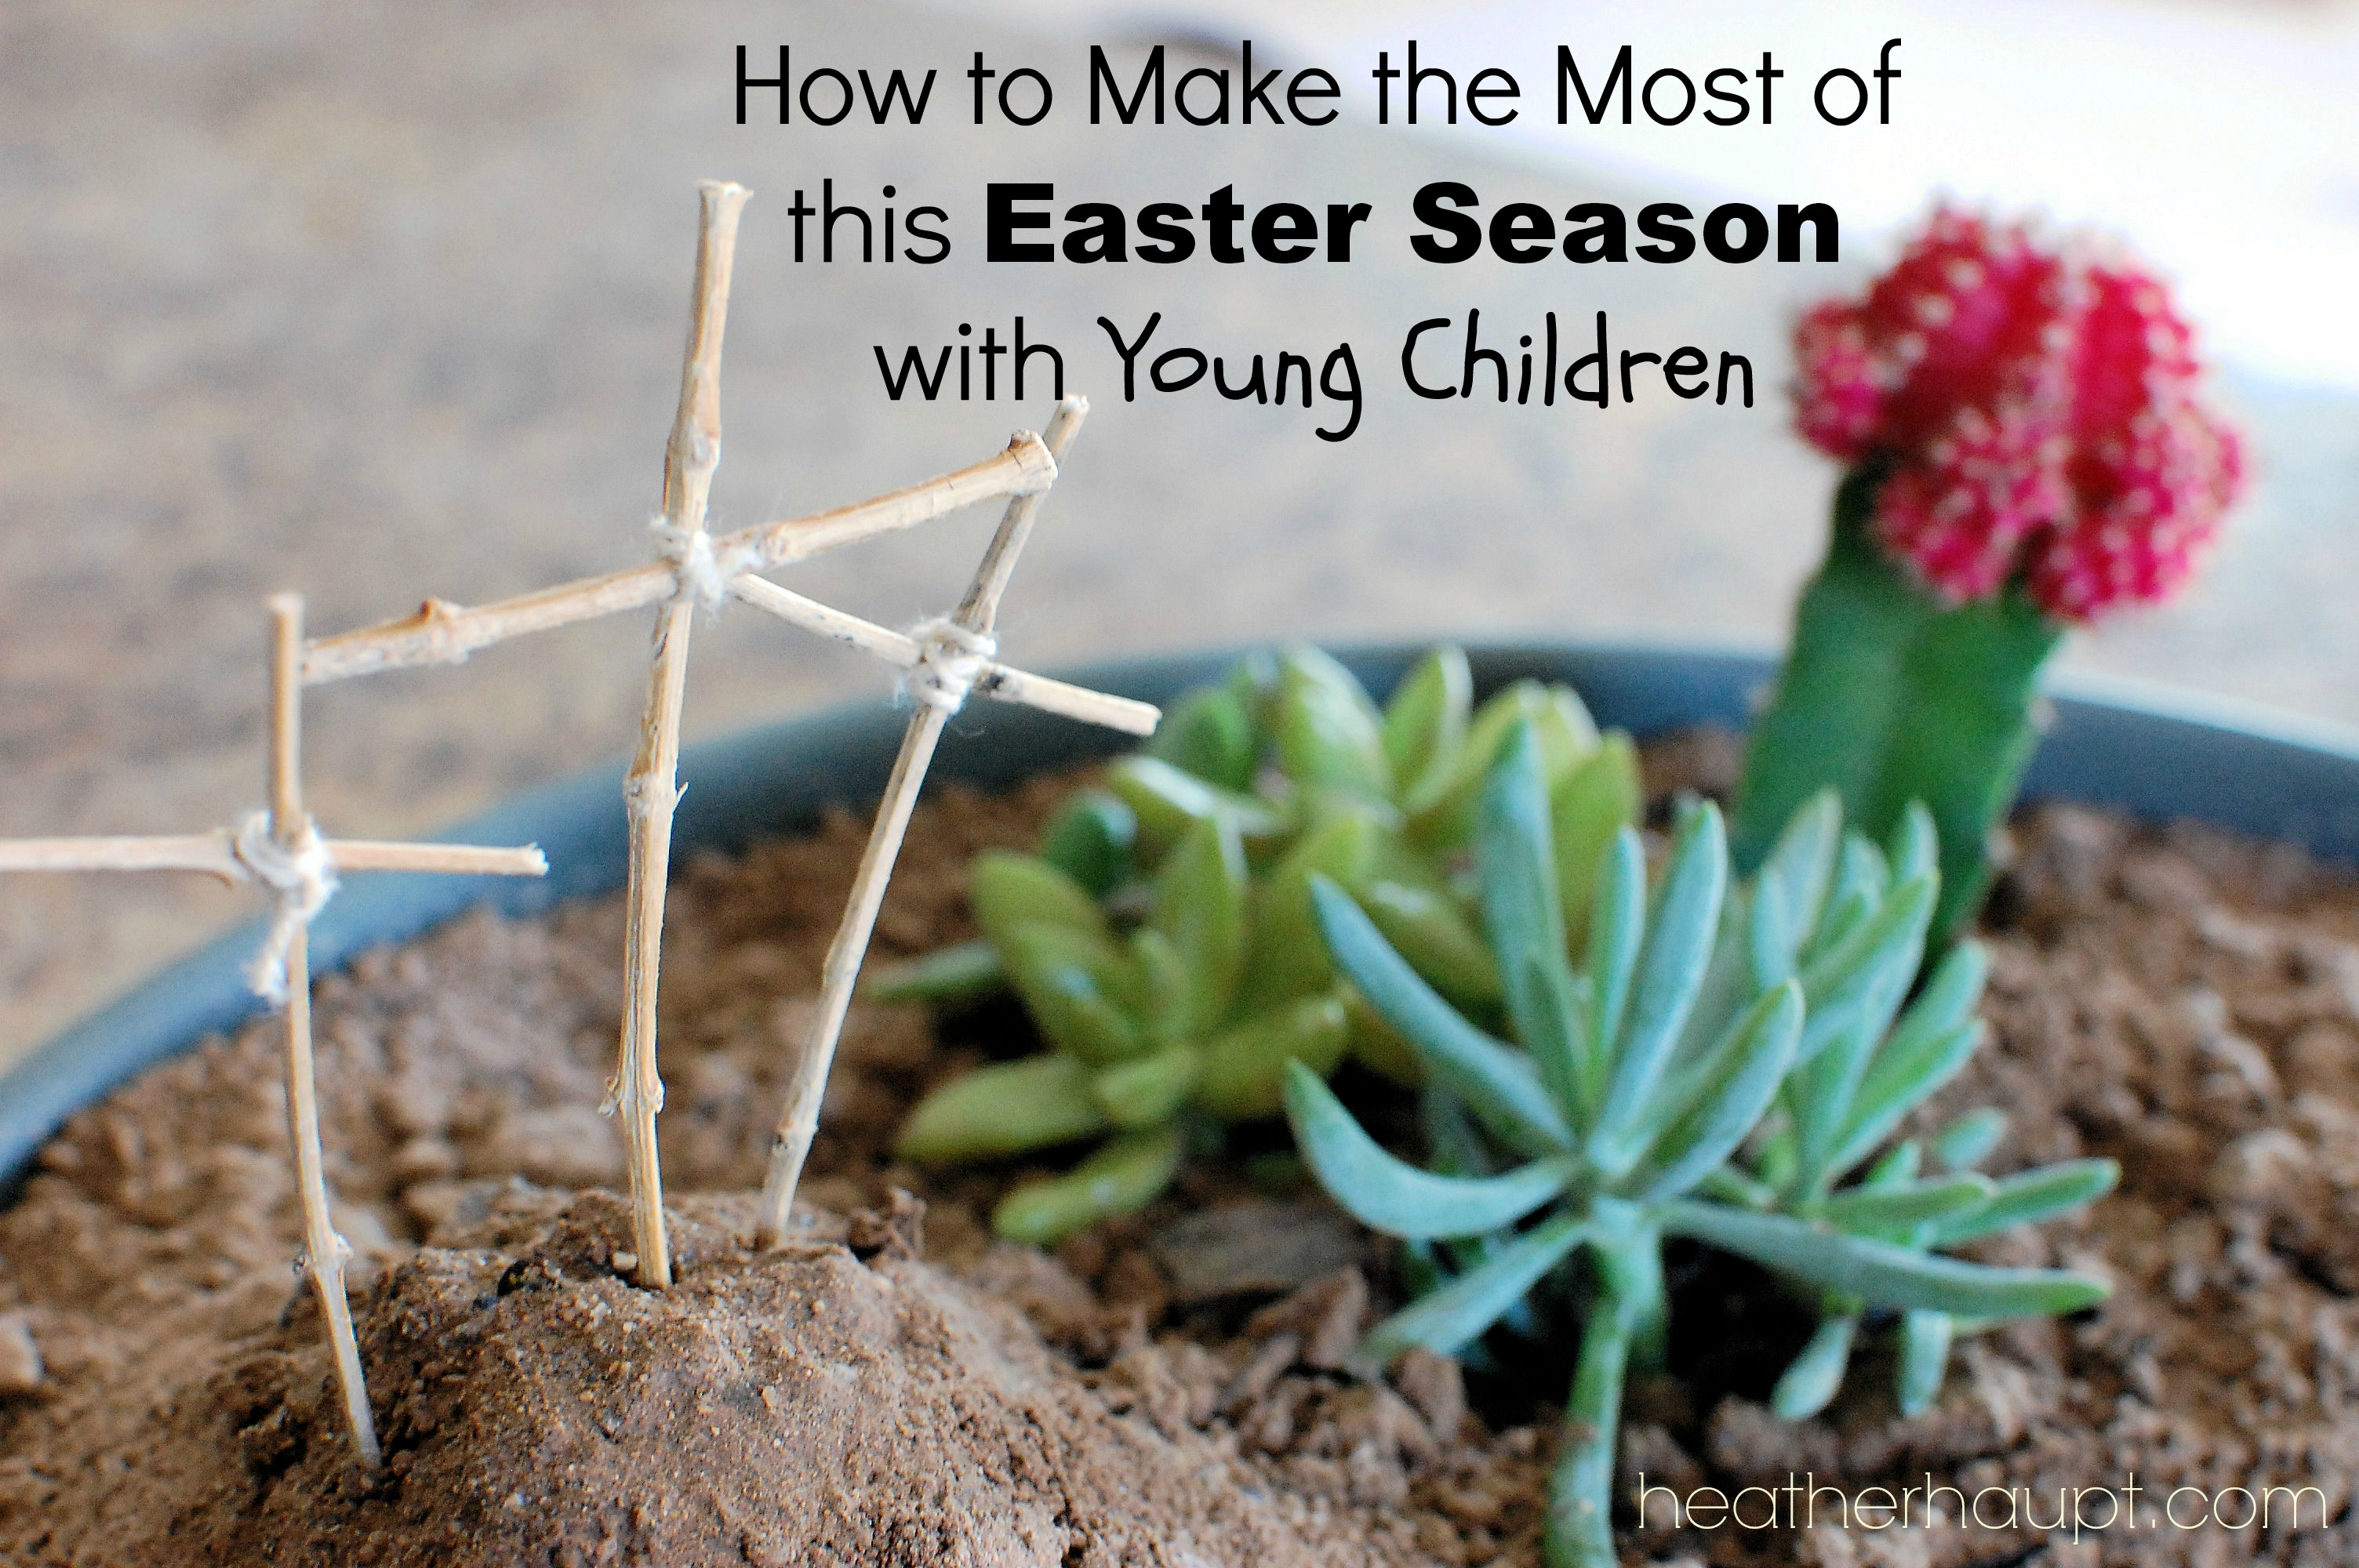 Tips and creative ideas to make such a deep topic relate-able to young children!